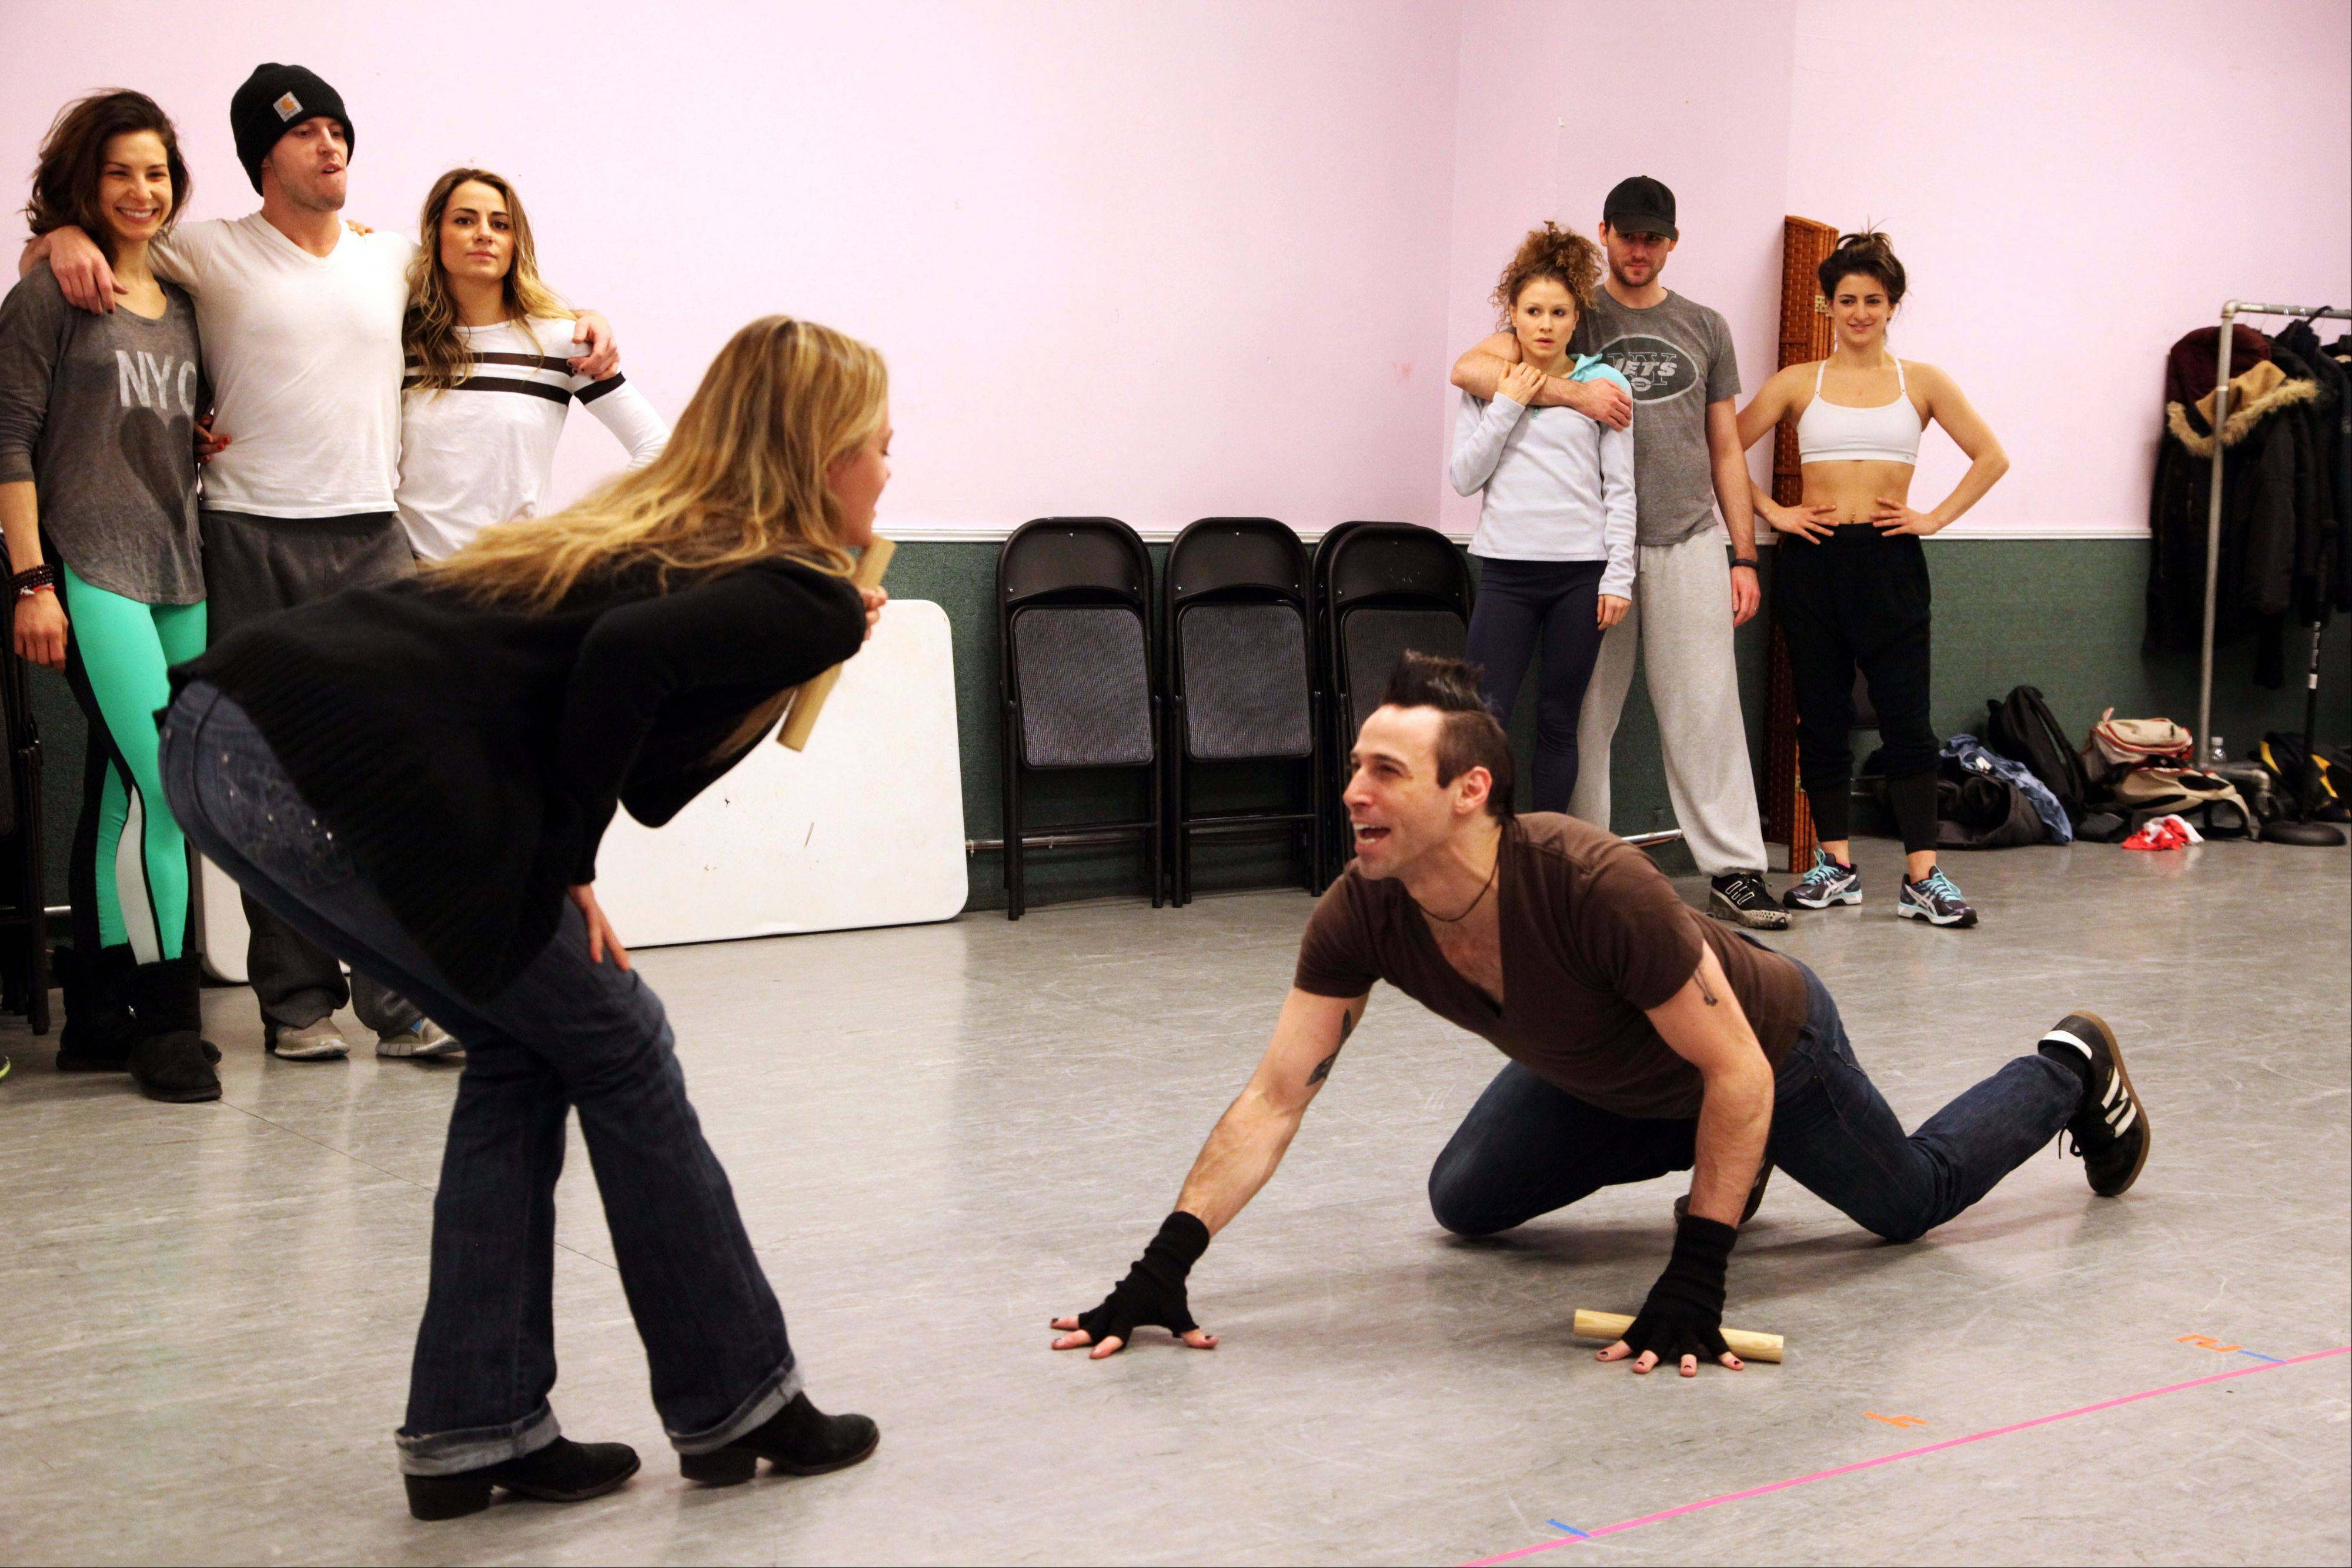 "Kate Rockwell, left, and Joey Calveri rehearse a scene from ""Rock of Ages"" at a dance studio in New York. The cast of the Broadway show will be part of the televised pregame entertainment from outside MetLife Stadium in New Jersey for Sunday's Super Bowl."